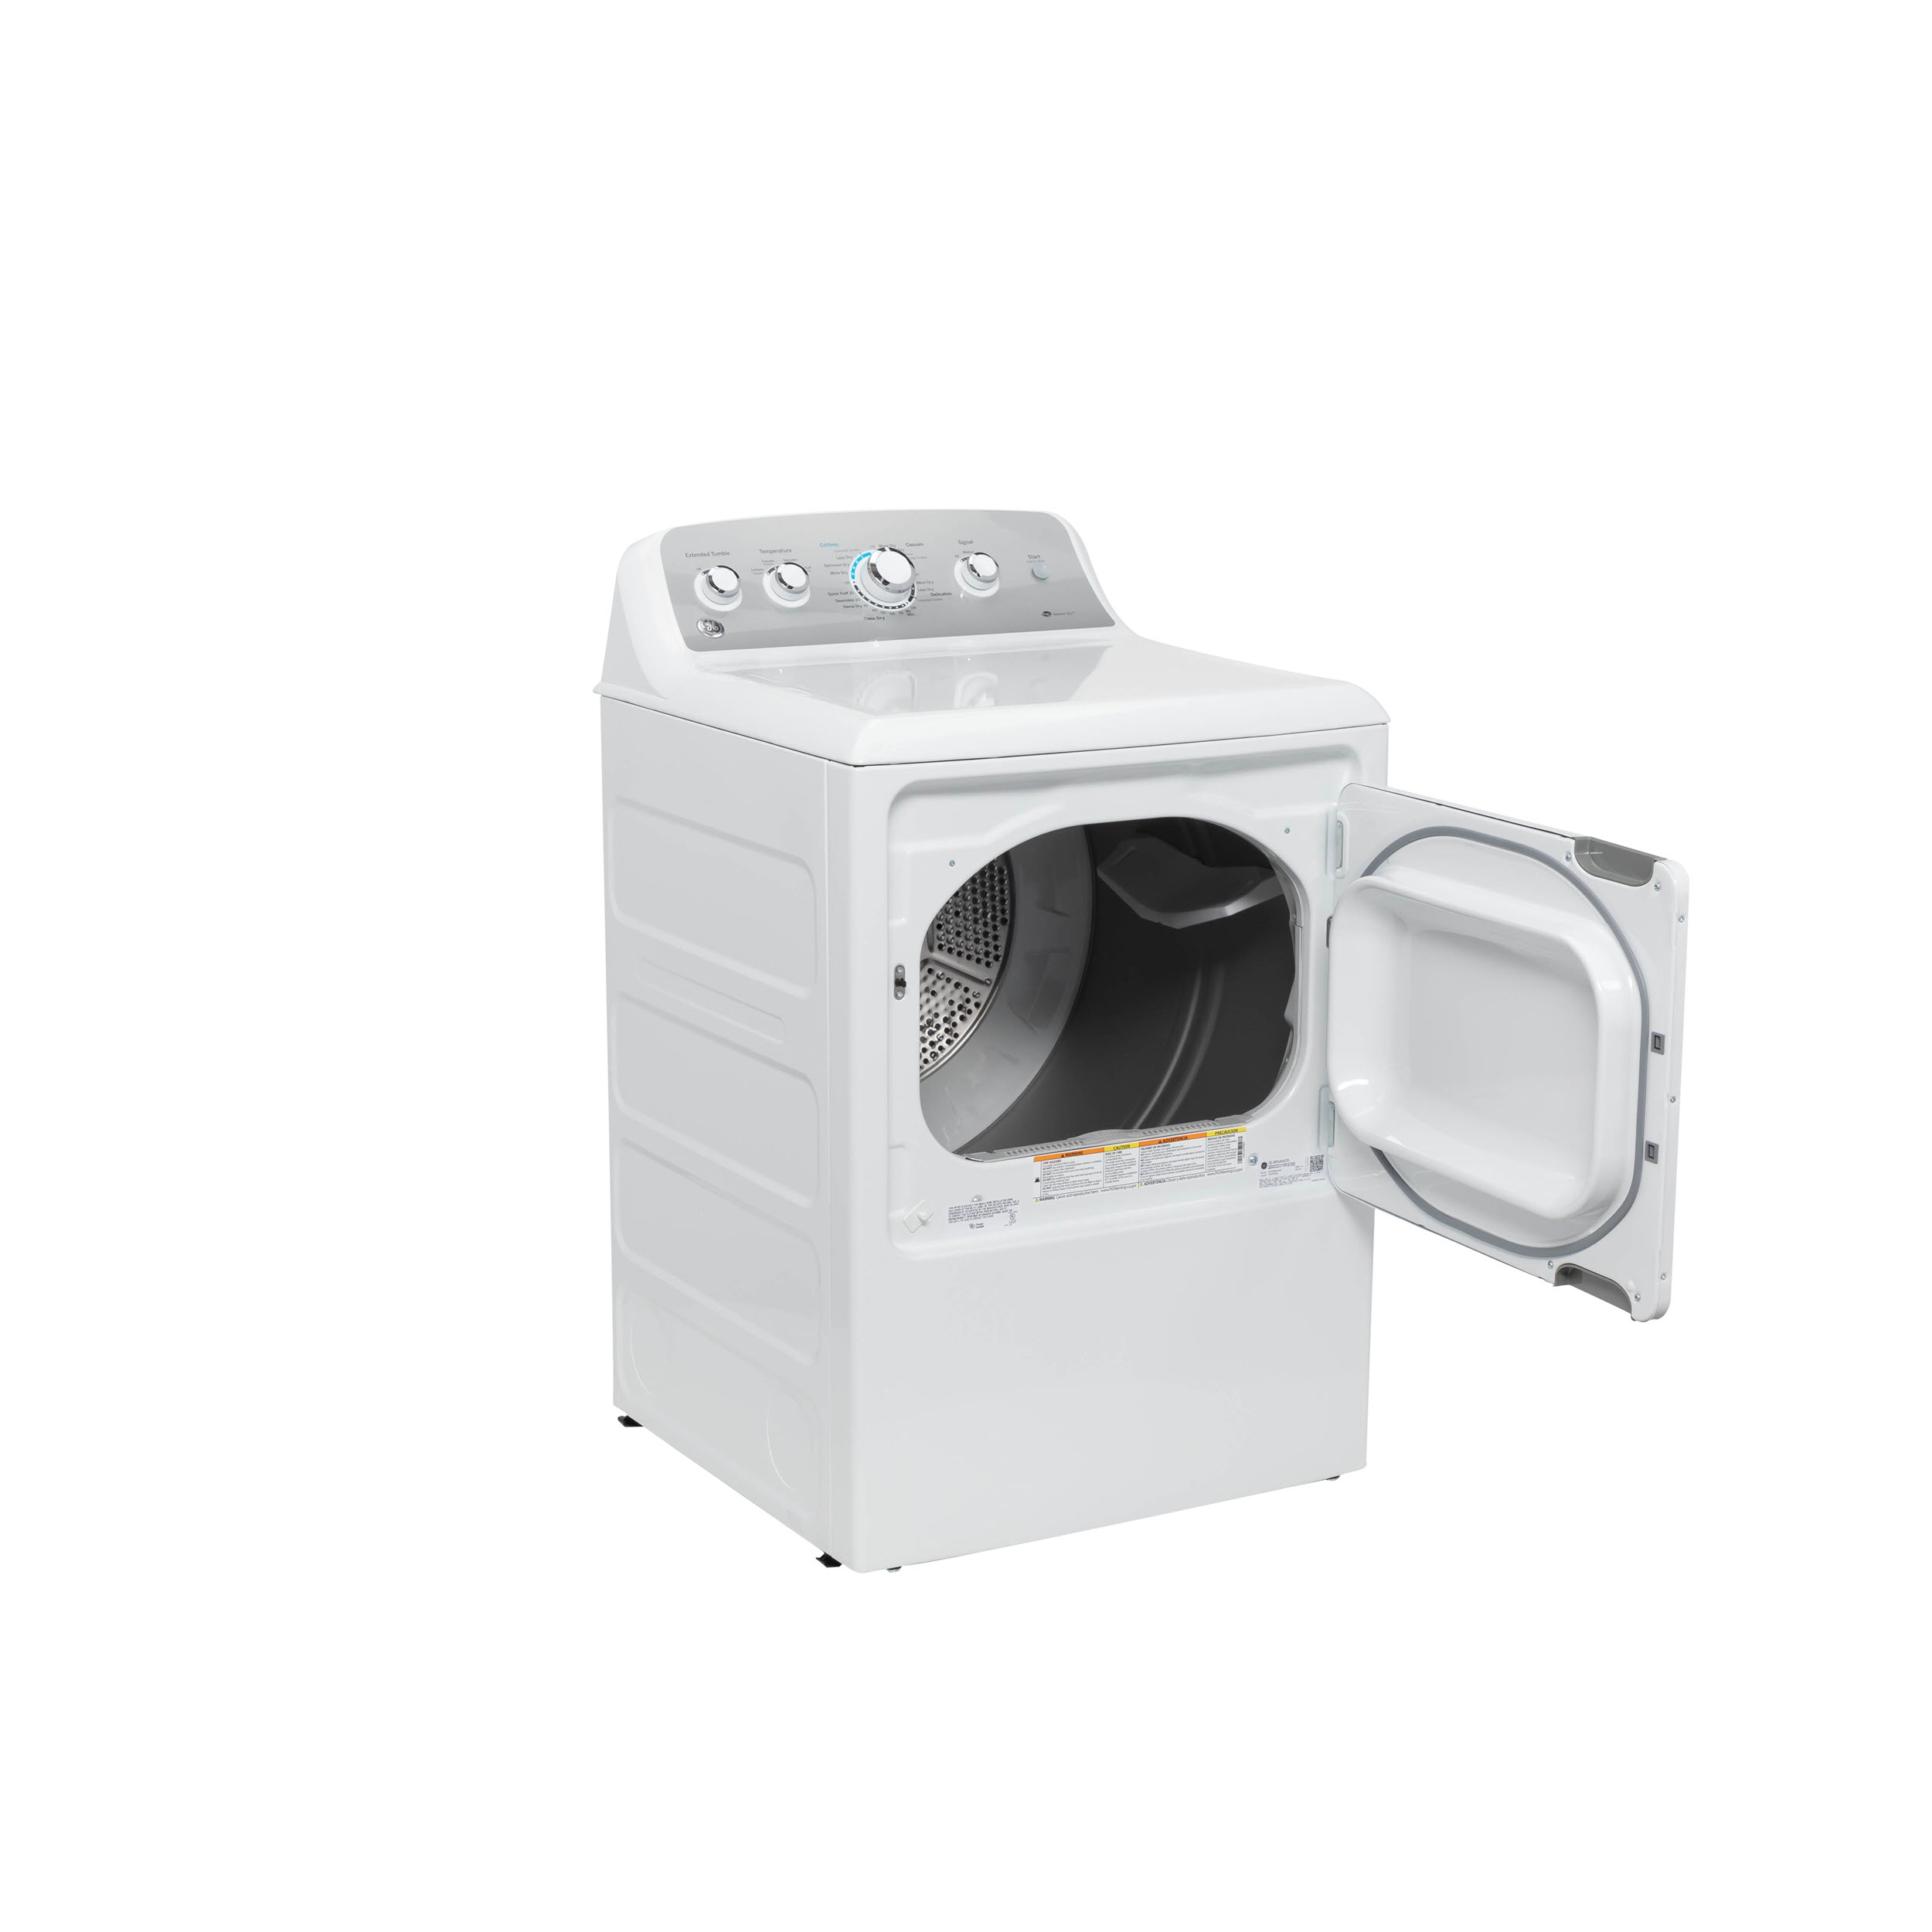 Model: GTD45GASJWS | GE GE® 7.2 cu. ft. Capacity aluminized alloy drum Gas Dryer with Sensor Dry